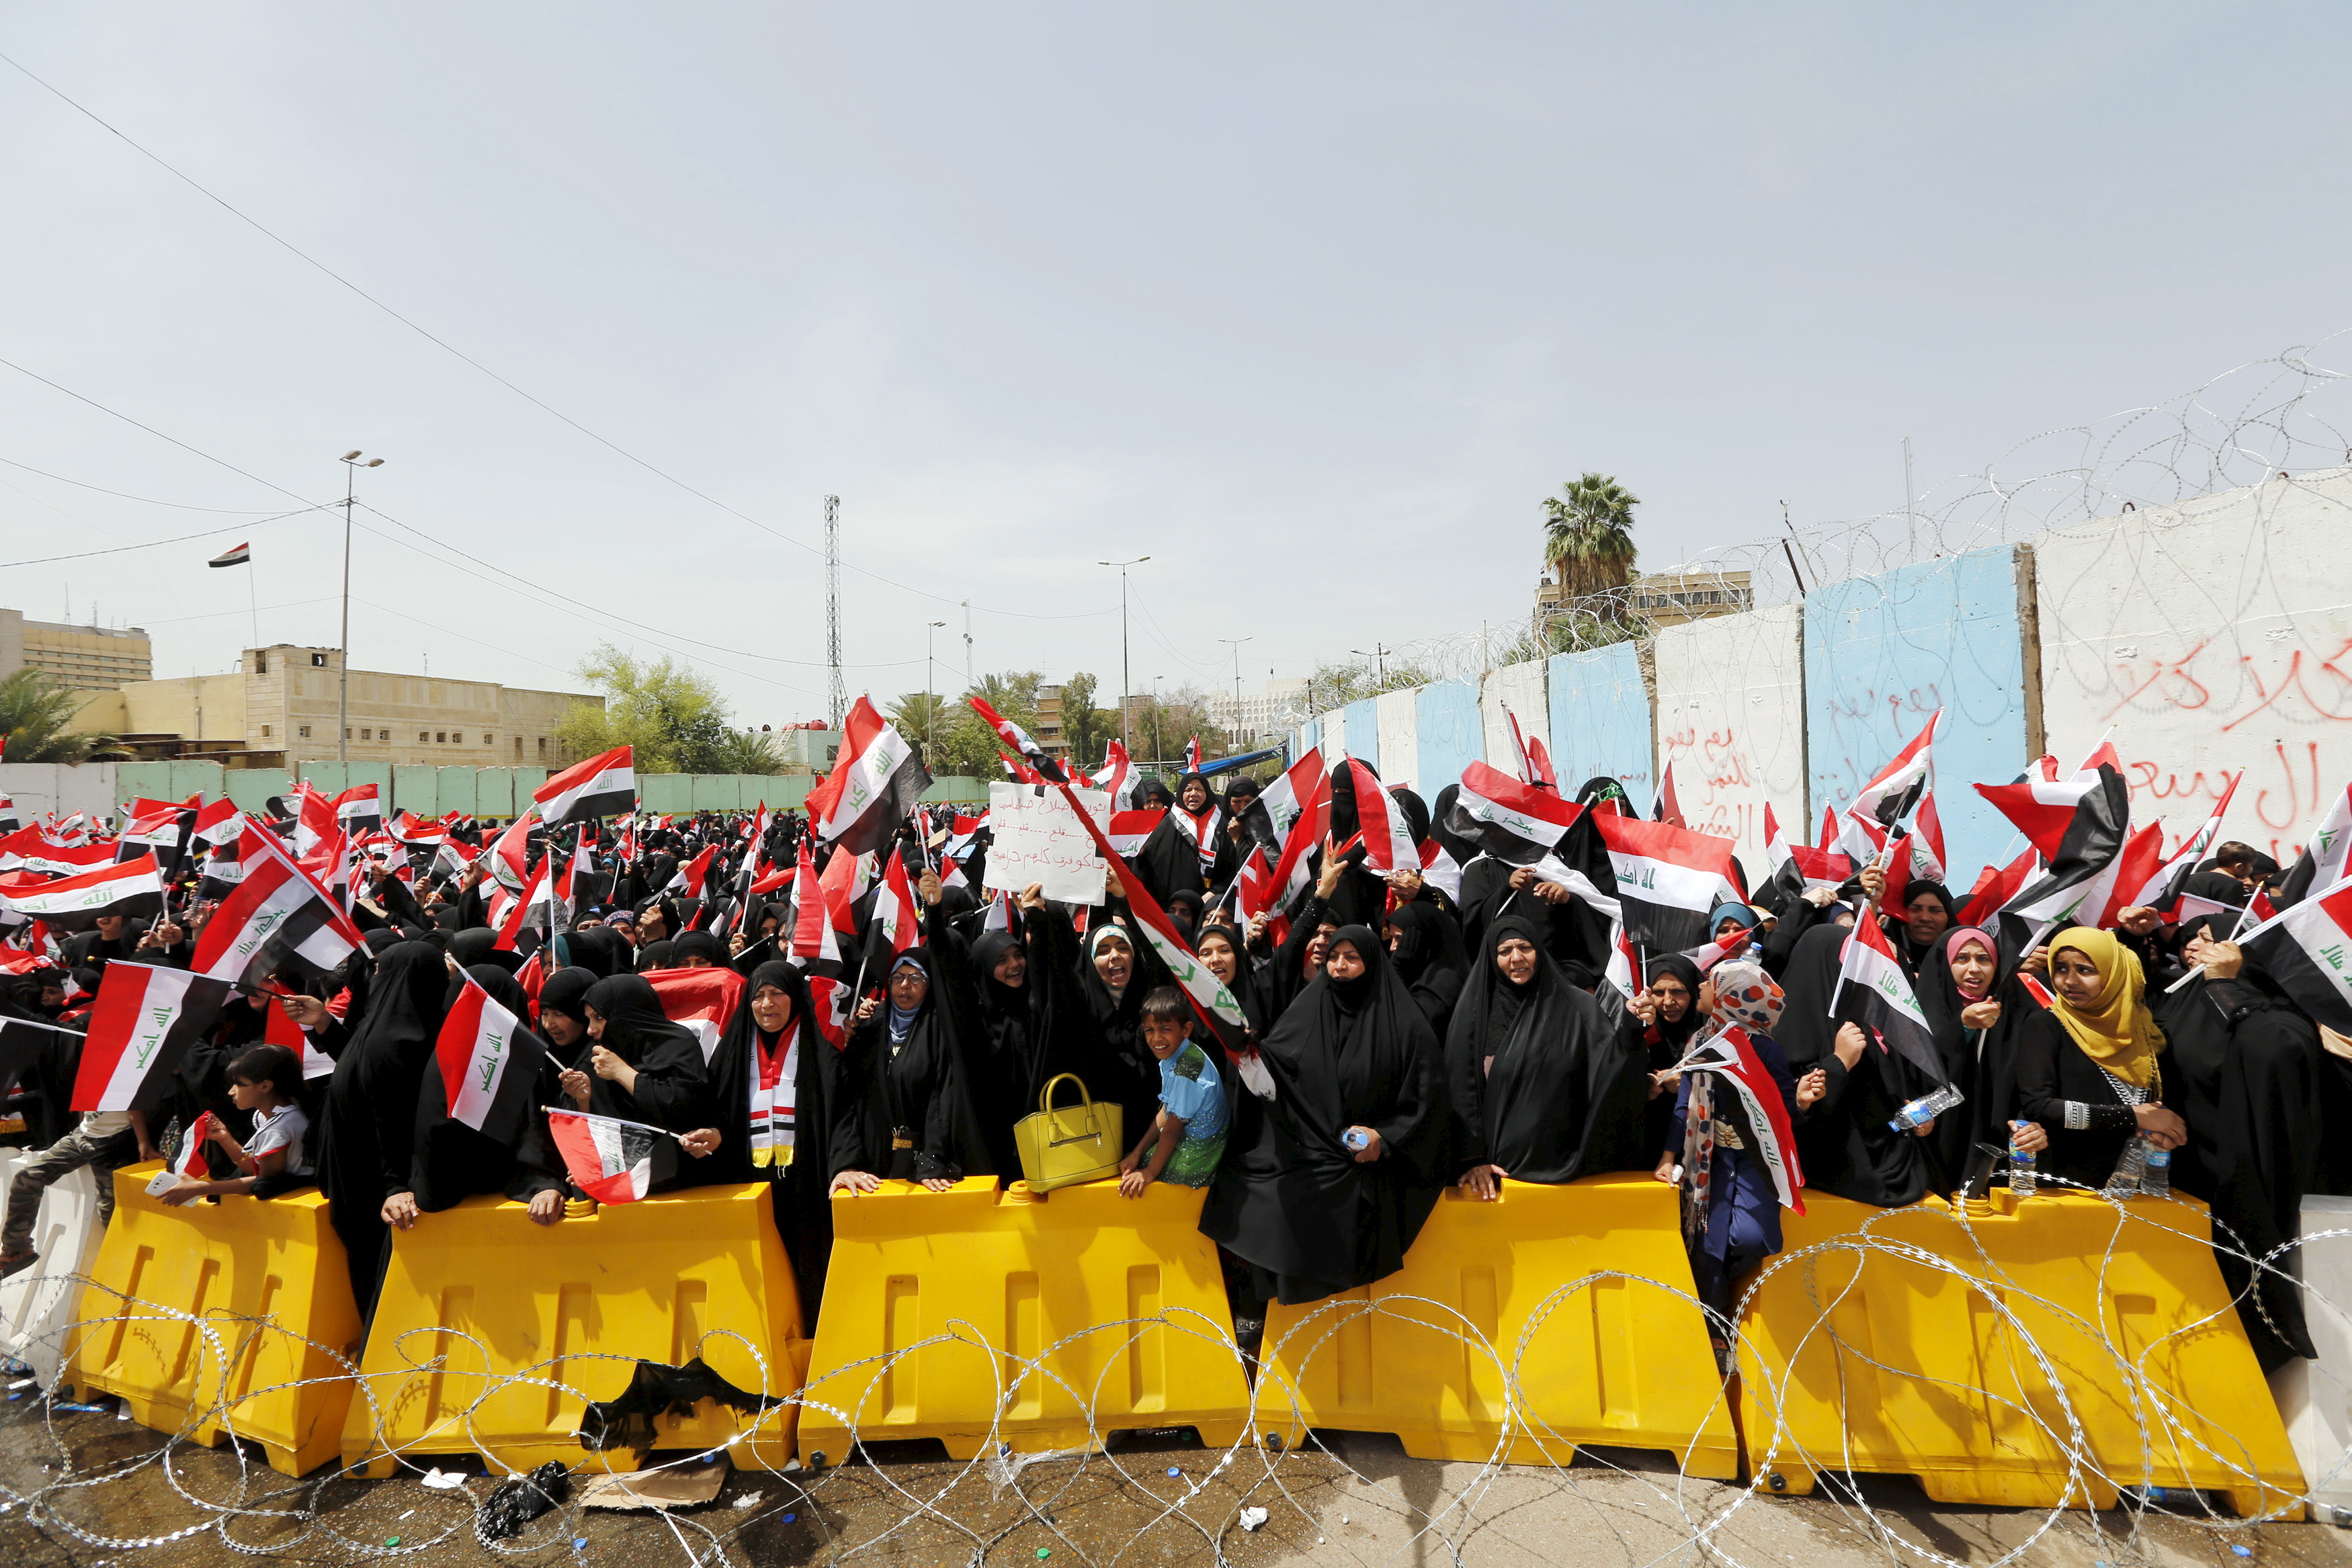 Followers of Iraq's Shi'ite cleric Moqtada al-Sadr wave Iraqi flags during a protest demanding that parliament approve a long-delayed new cabinet, in Baghdad, Iraq, April 26, 2016.